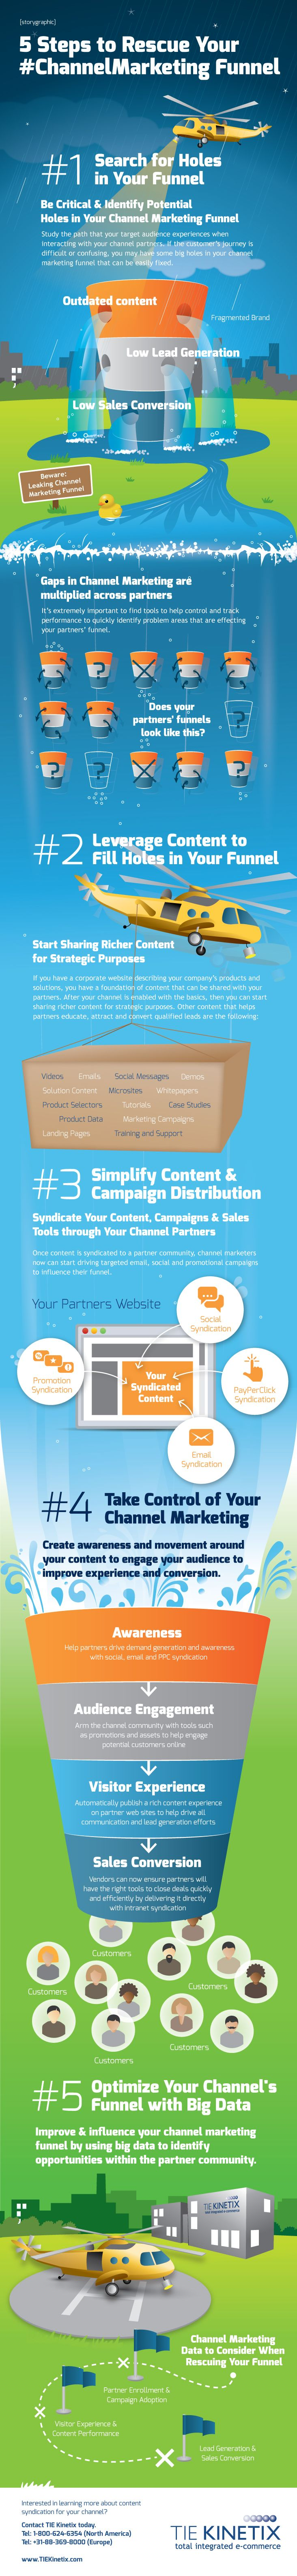 5 steps to rescue your channelmarketing funnel new storygraphic for channel partner success